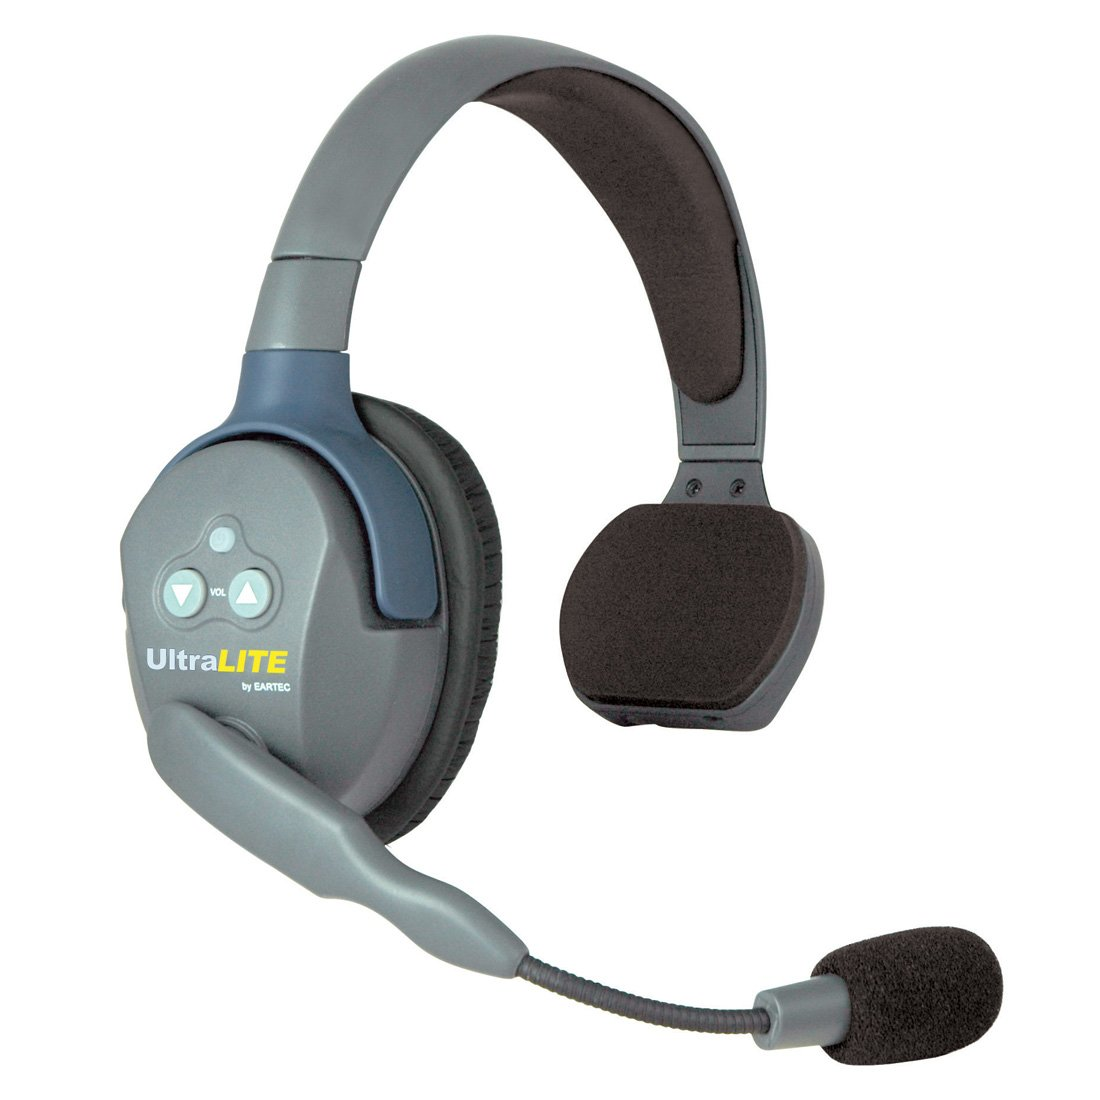 Eartec UltraLITE Single Remote Headset with Microphone and Rechargeable Lithium Battery